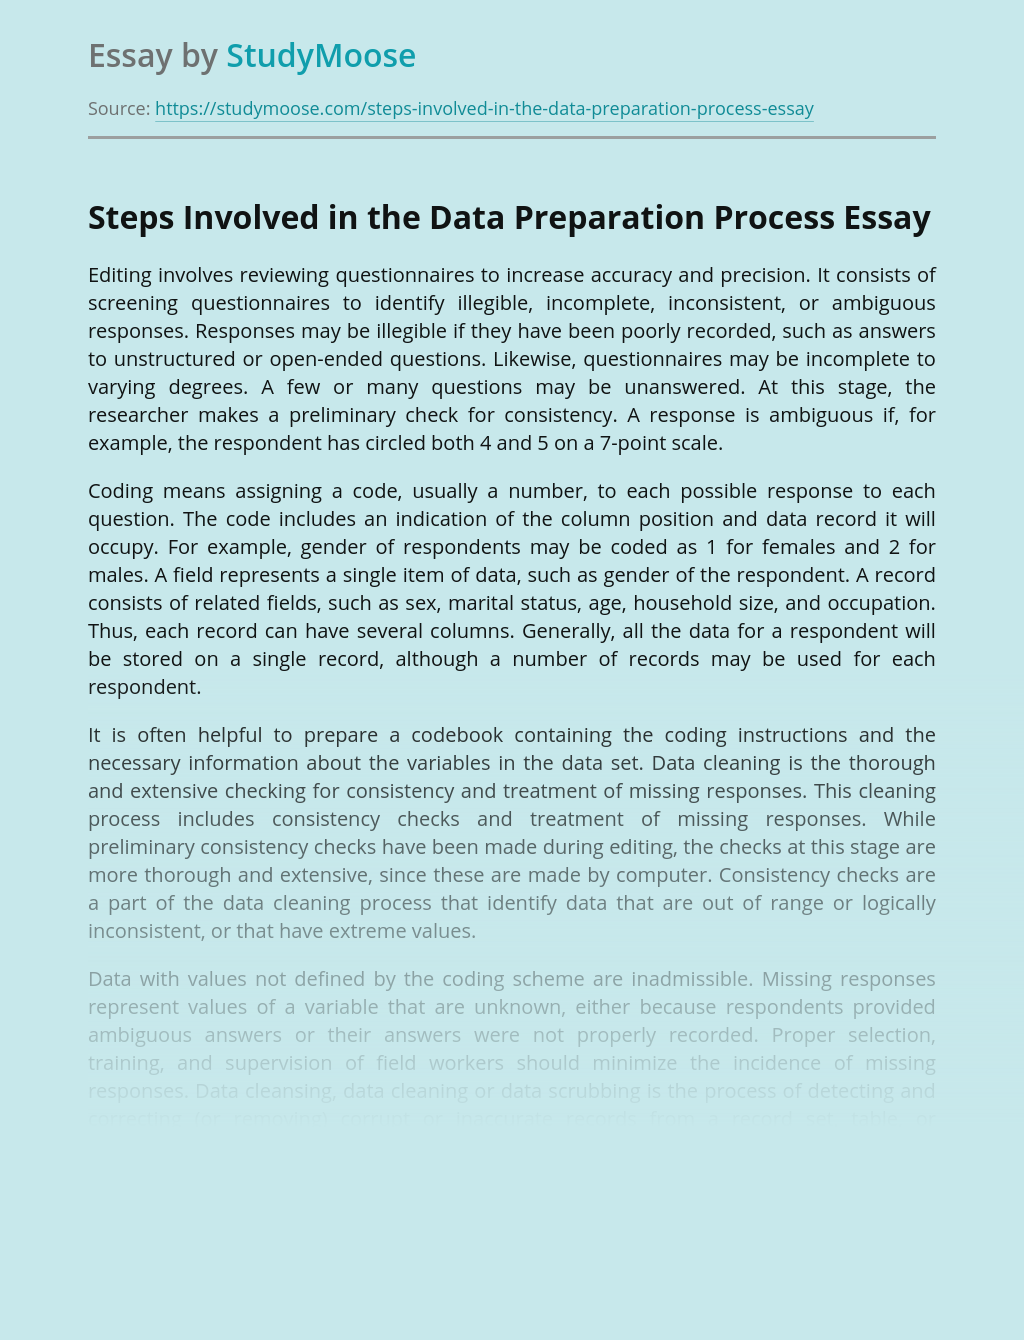 Steps Involved in the Data Preparation Process